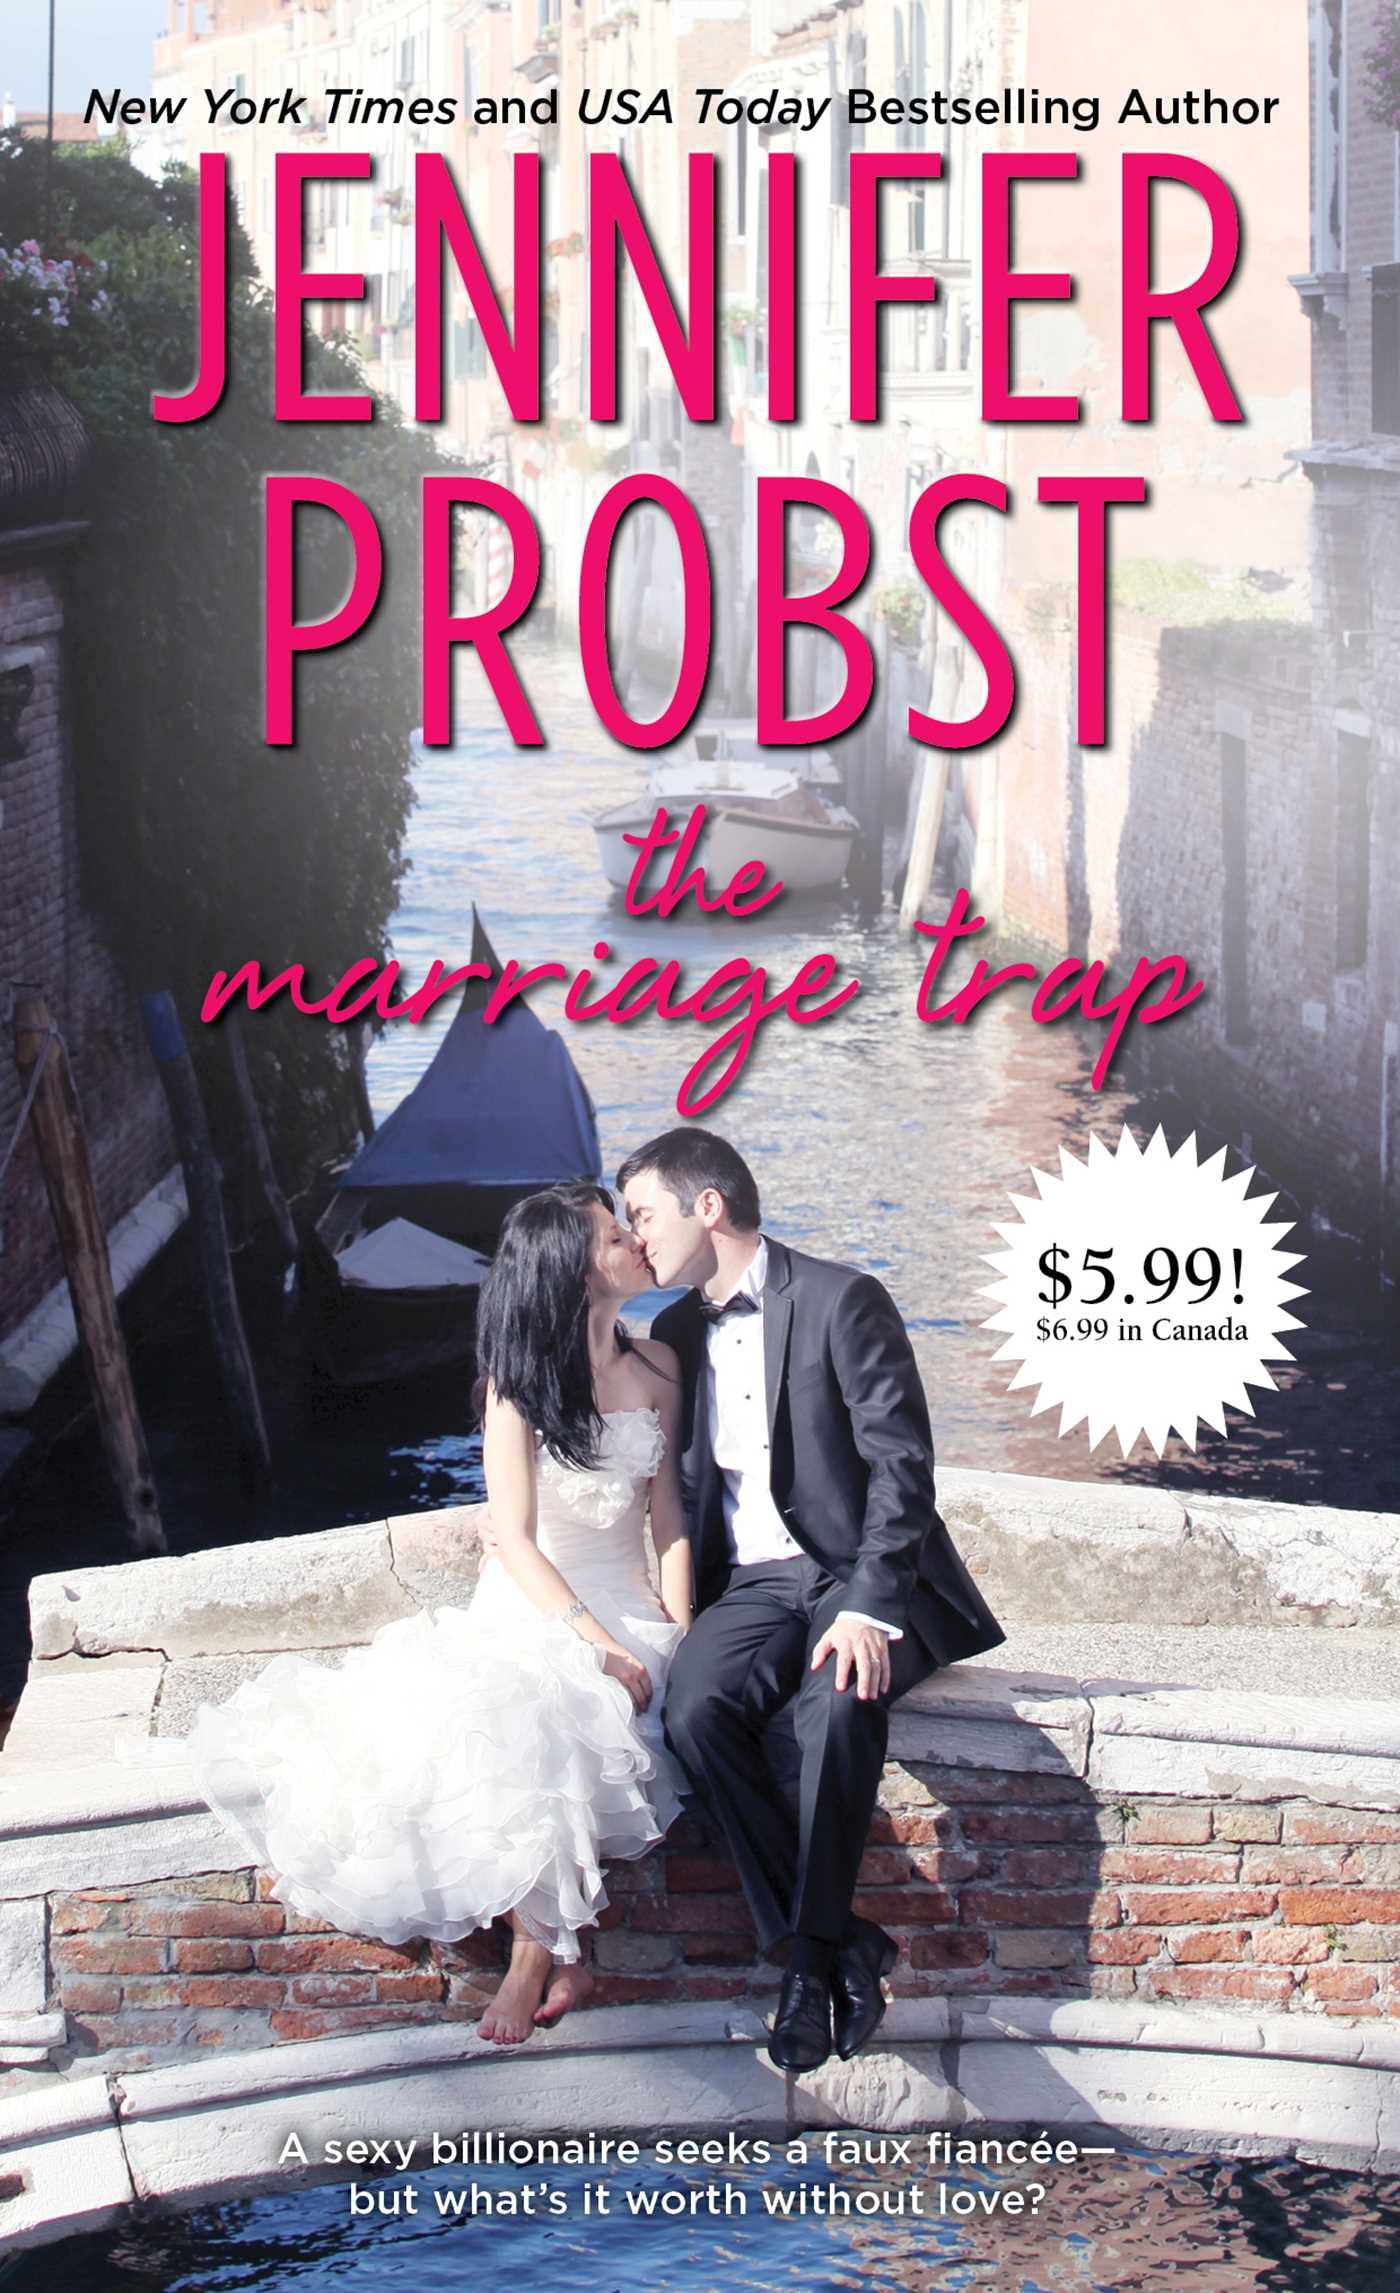 Marriage Trap book cover